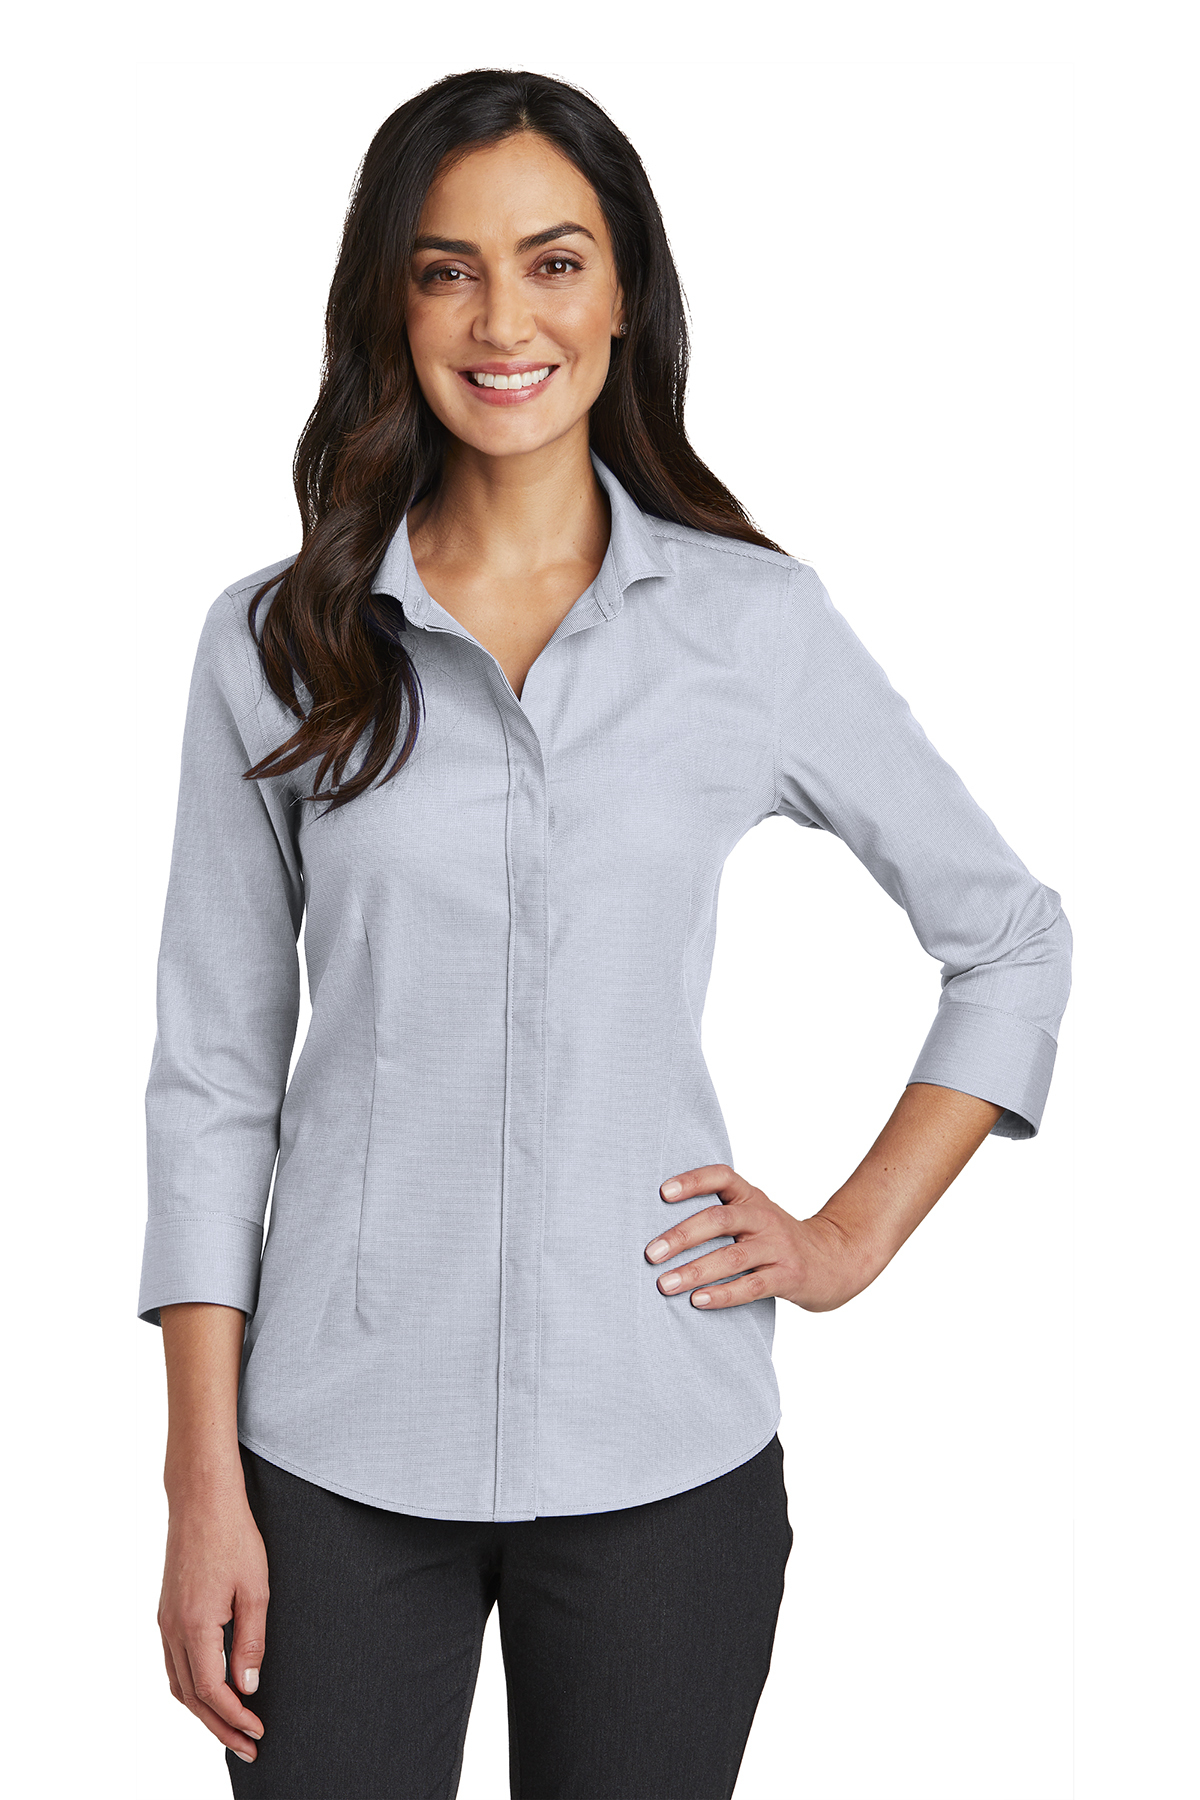 Red House RH690 - Ladies 3/4-Sleeve Nailhead Non-Iron Shirt